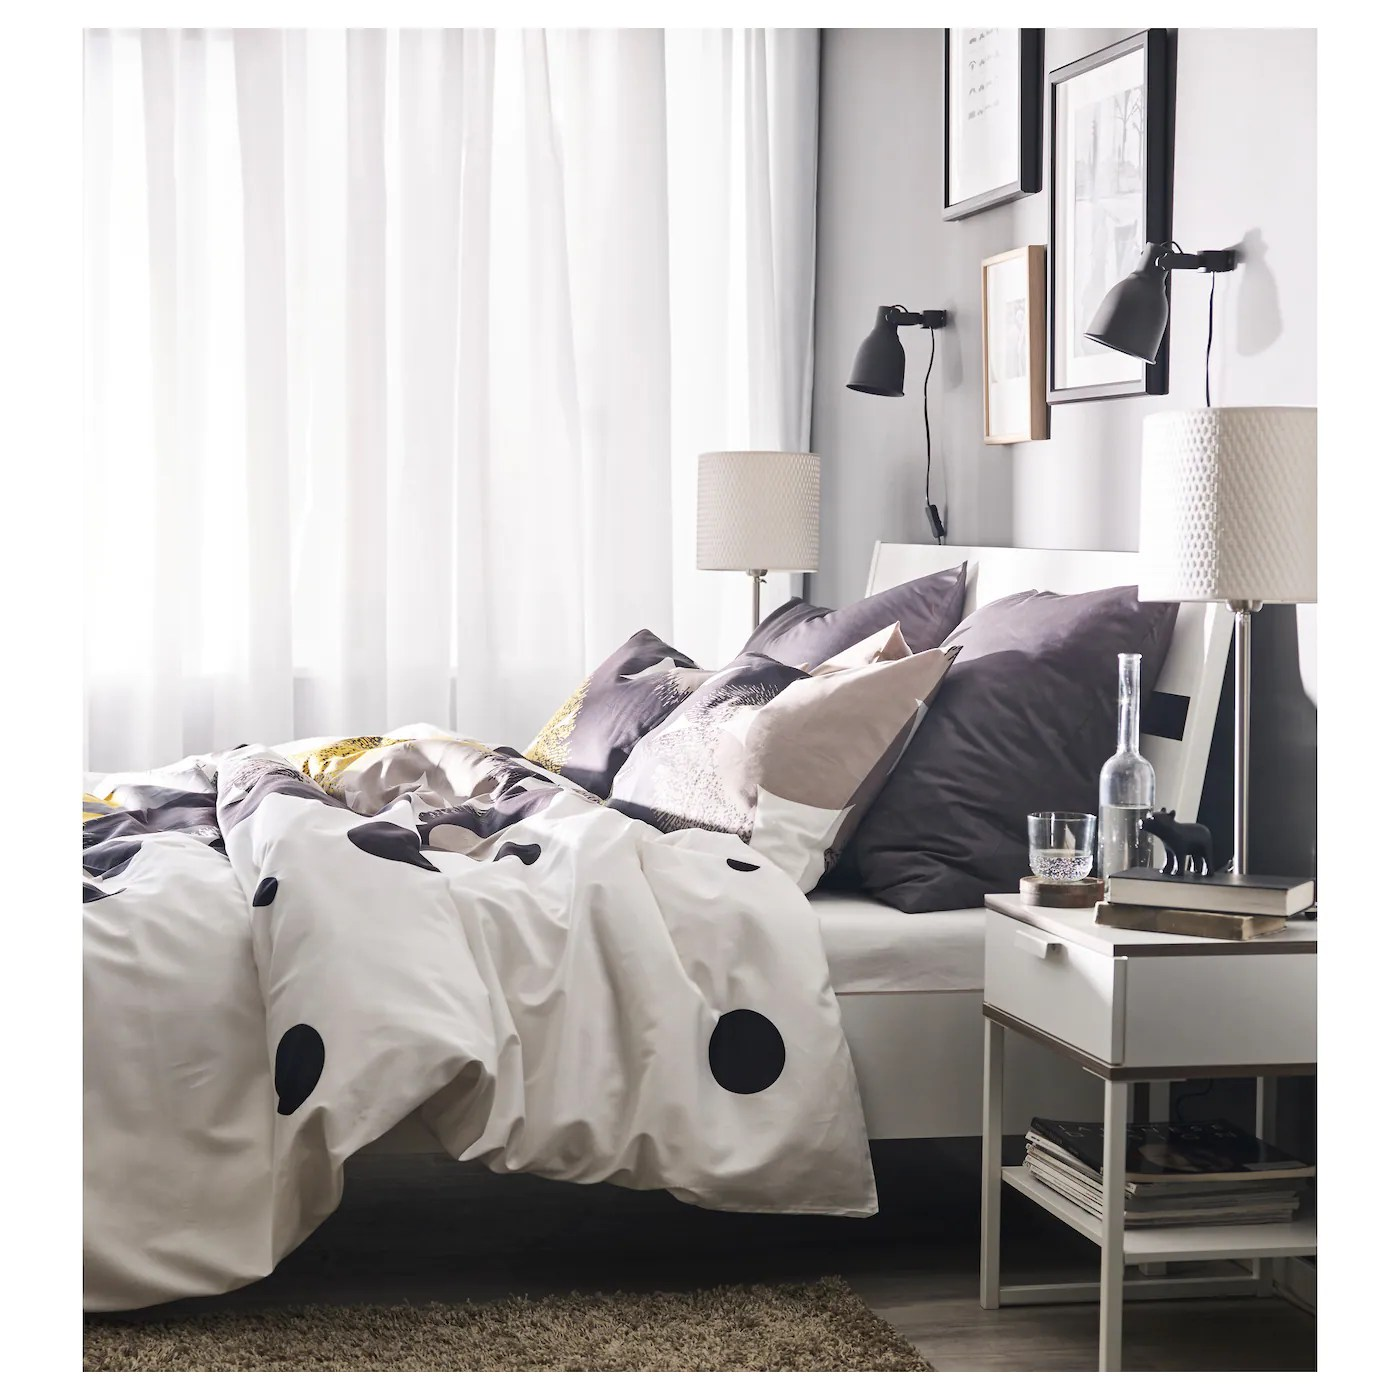 ikea trysil bed frame the angled headboard allows you to sit comfortably when reading in bed